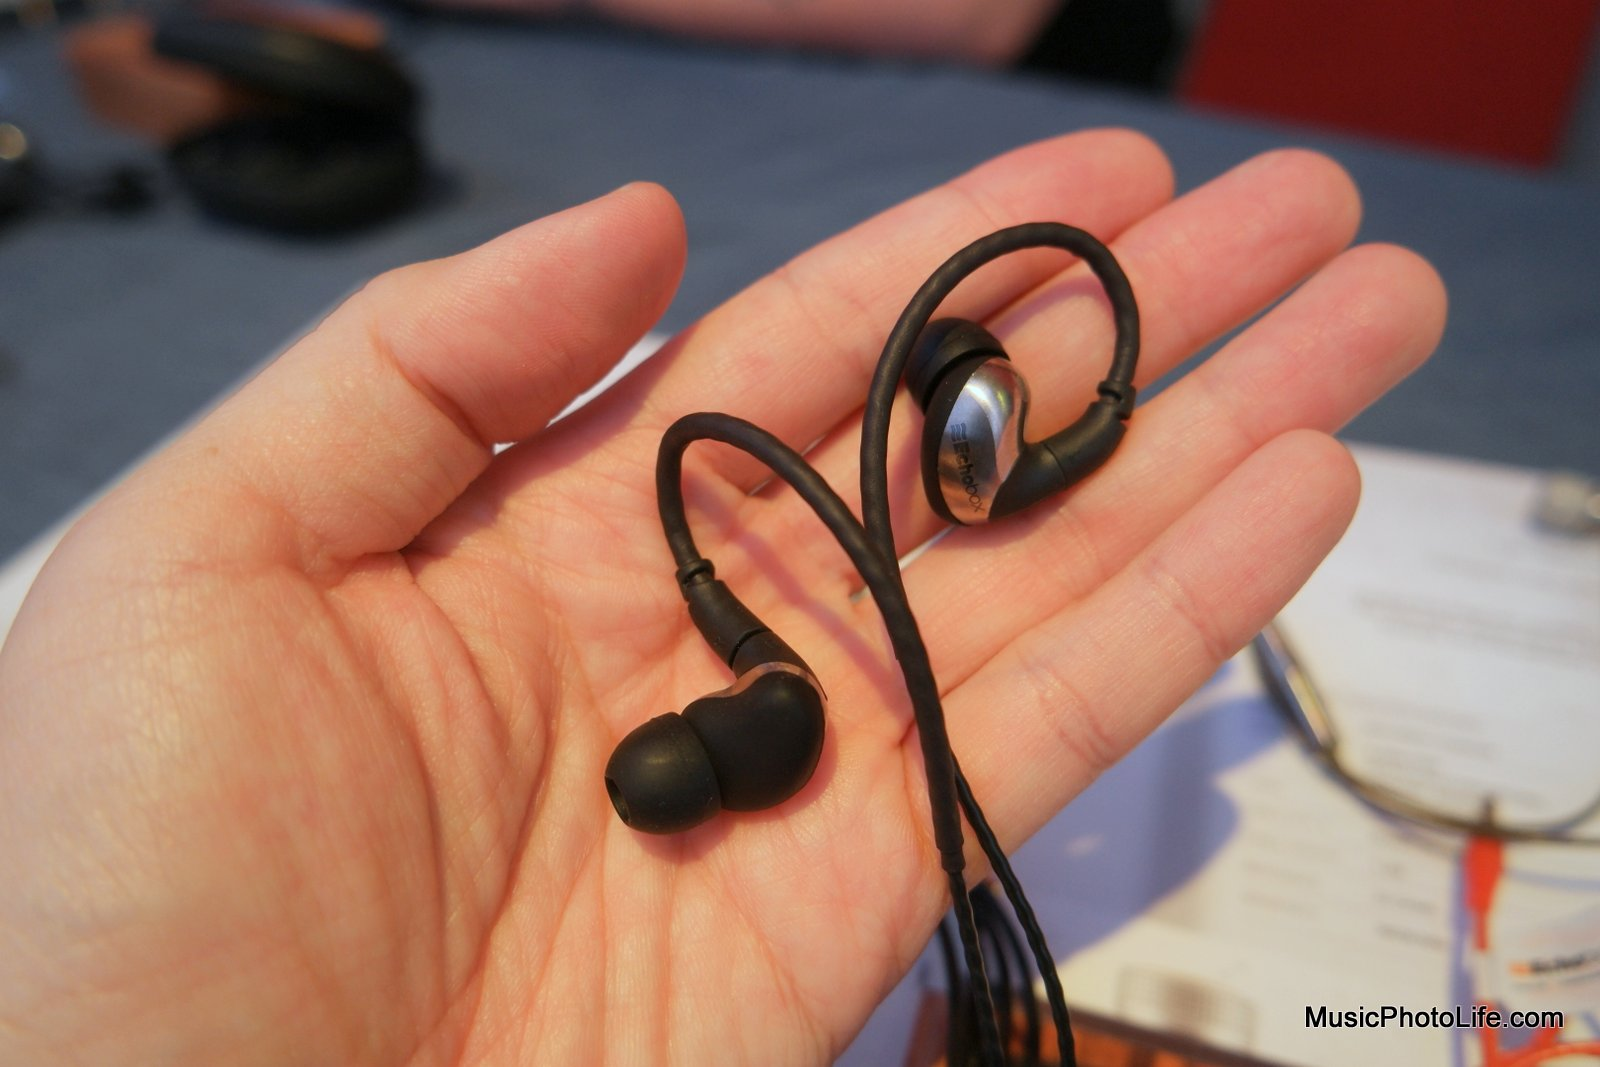 Echobox Audio Nomad earphones review by musicphotolife.com